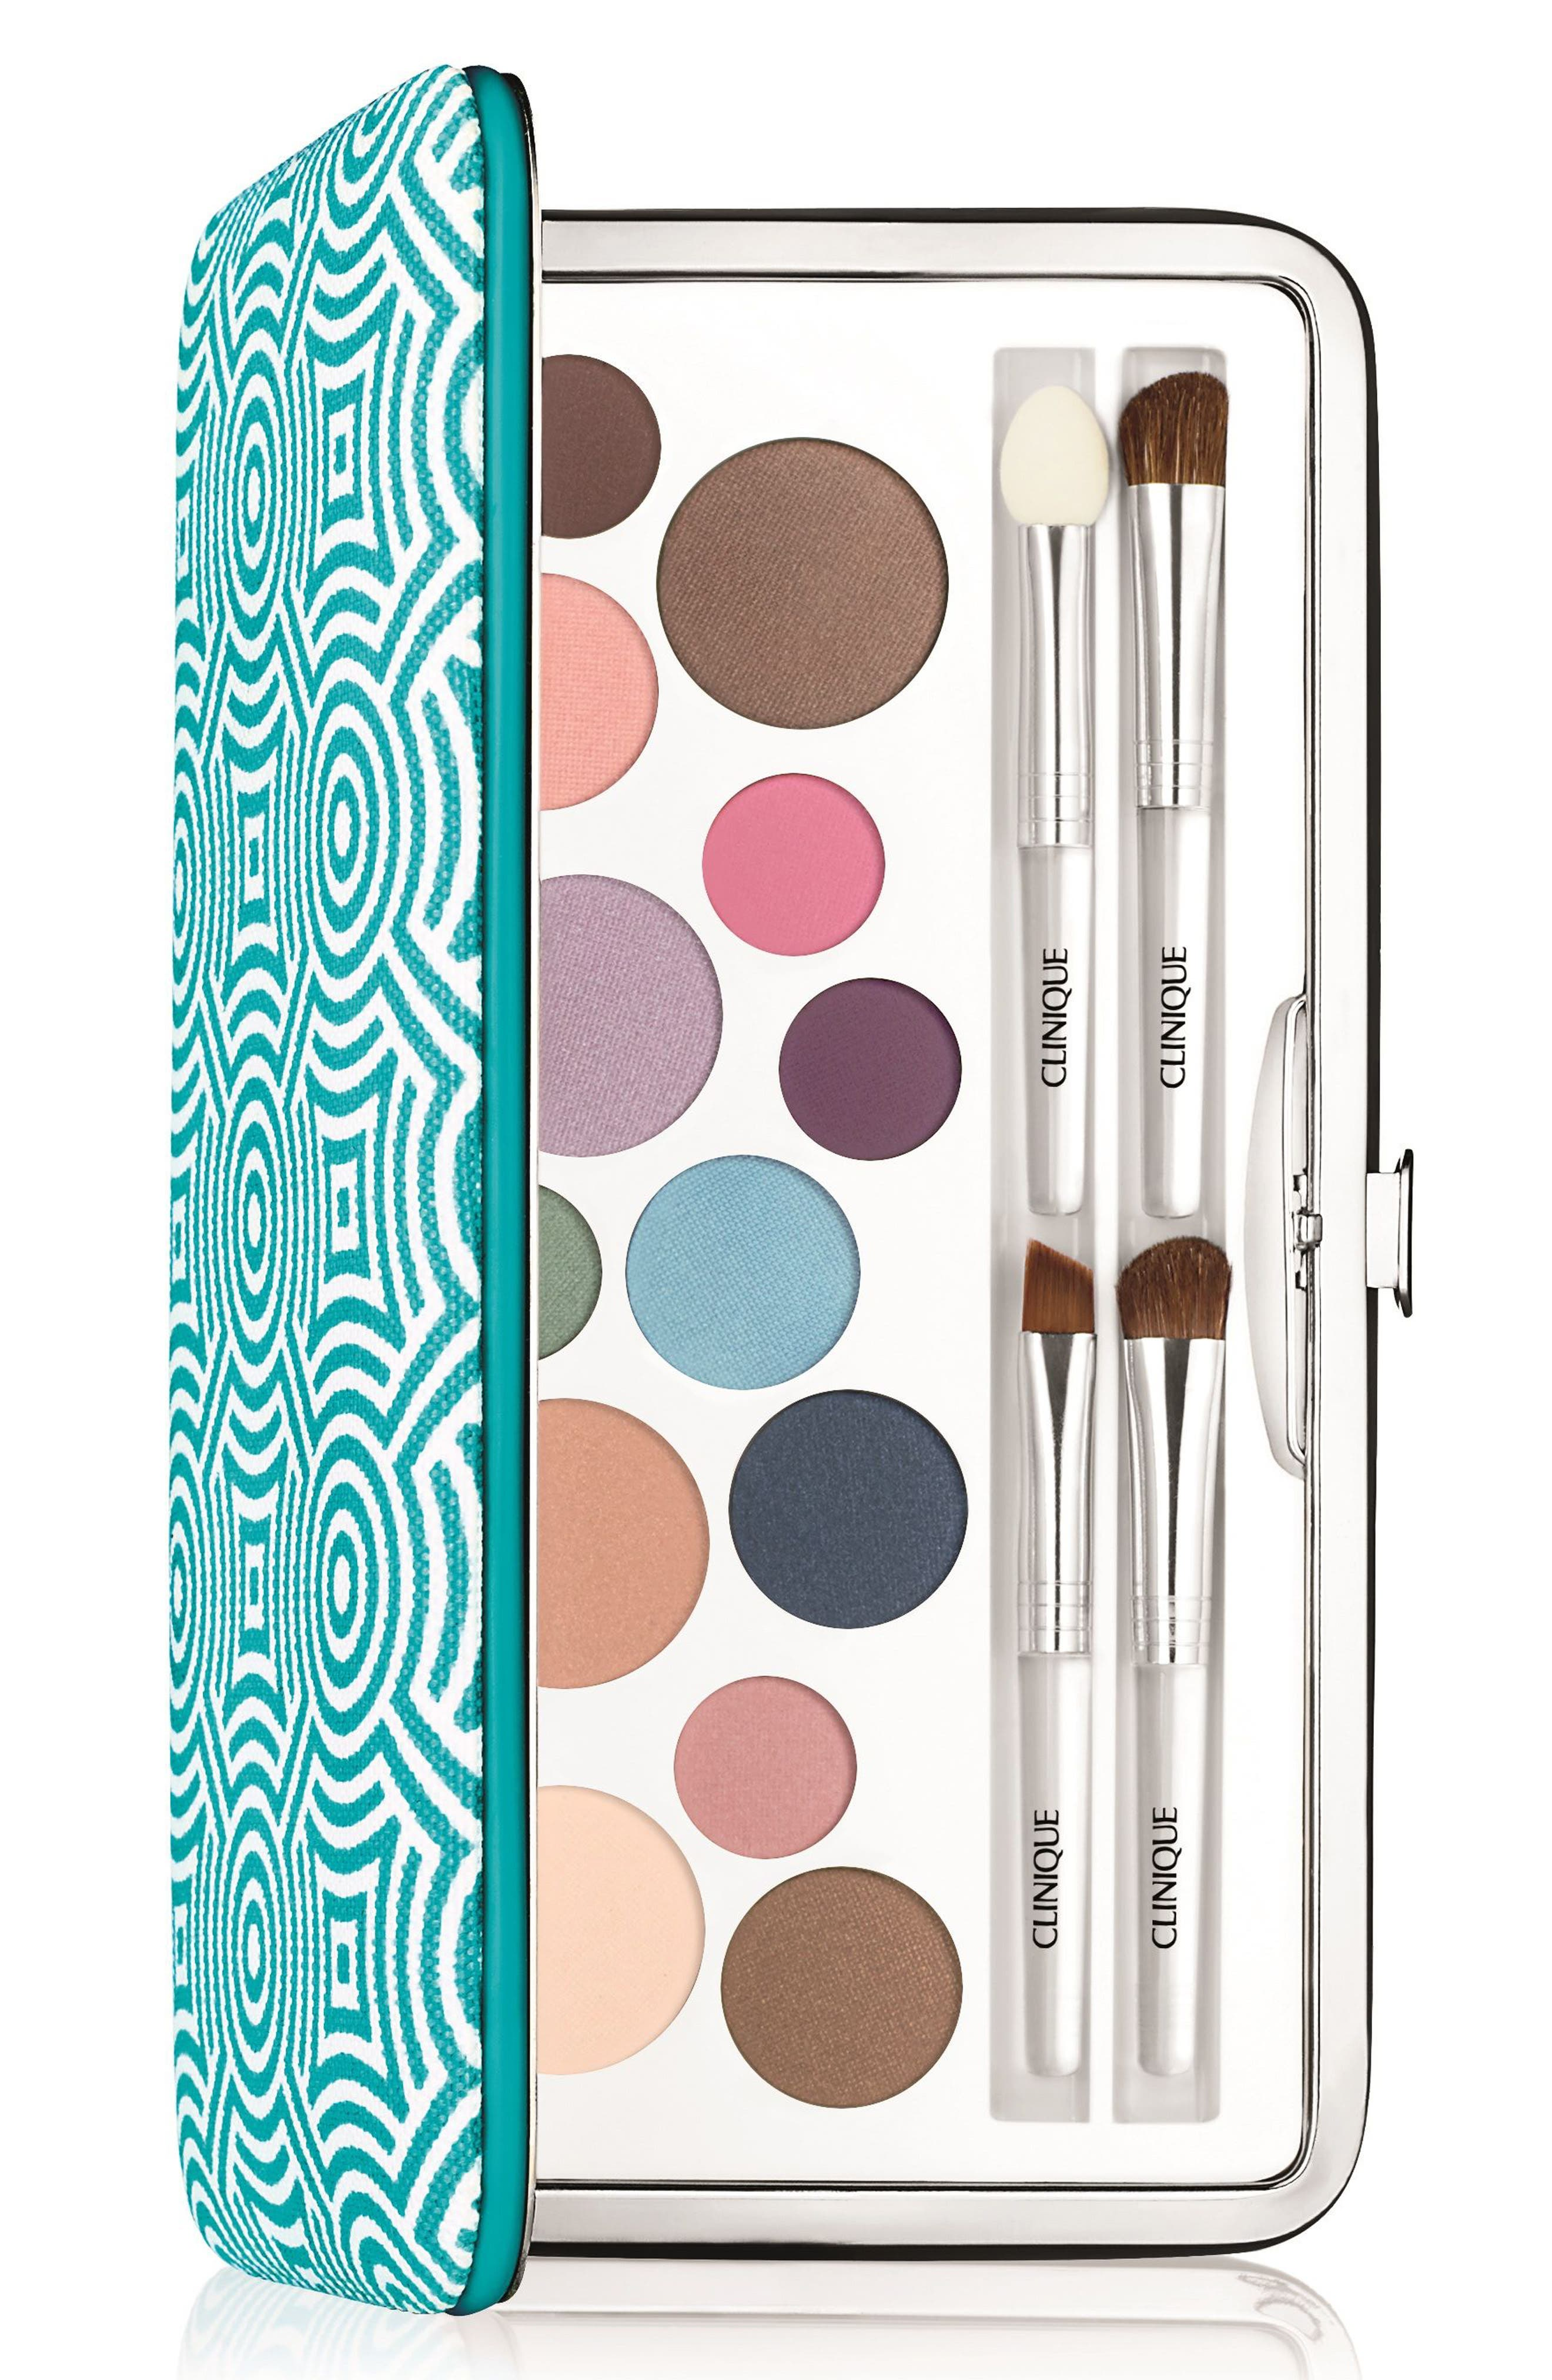 Clinique Jonathan Adler Chic Color Kit ($89 Value)